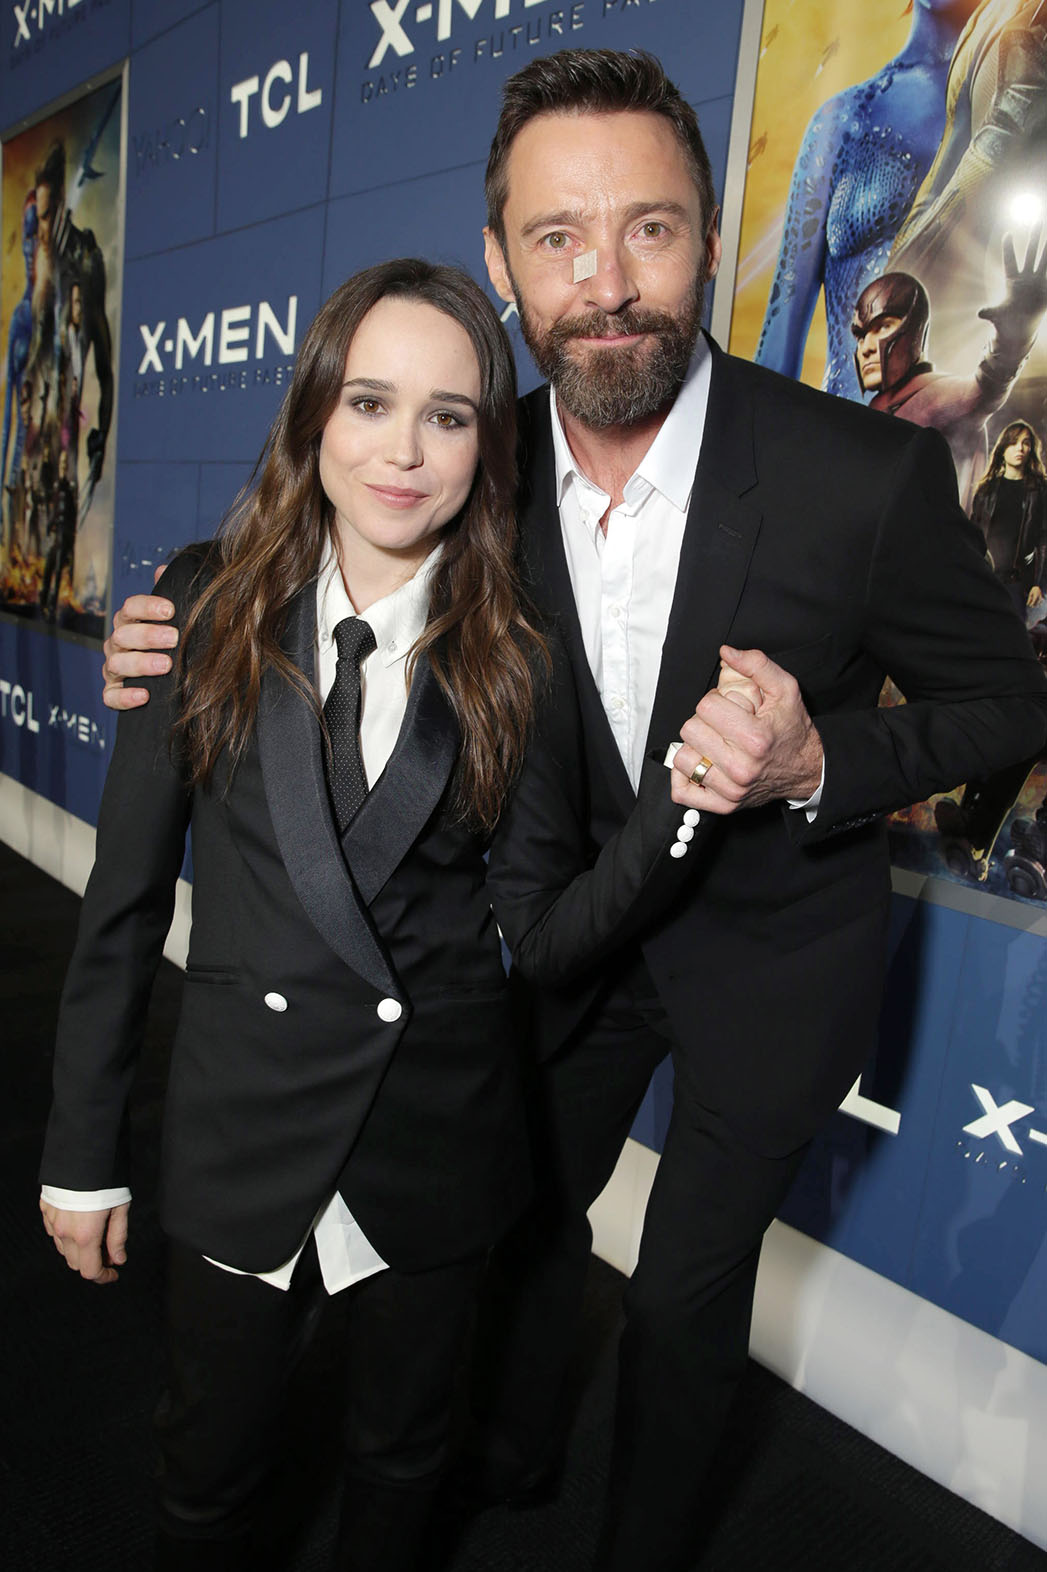 Ellen_Page_Hugh_Jackman_at_Twentieth_Century_Fox_Premiere_XMen_Days_of_Future_Past.jpg